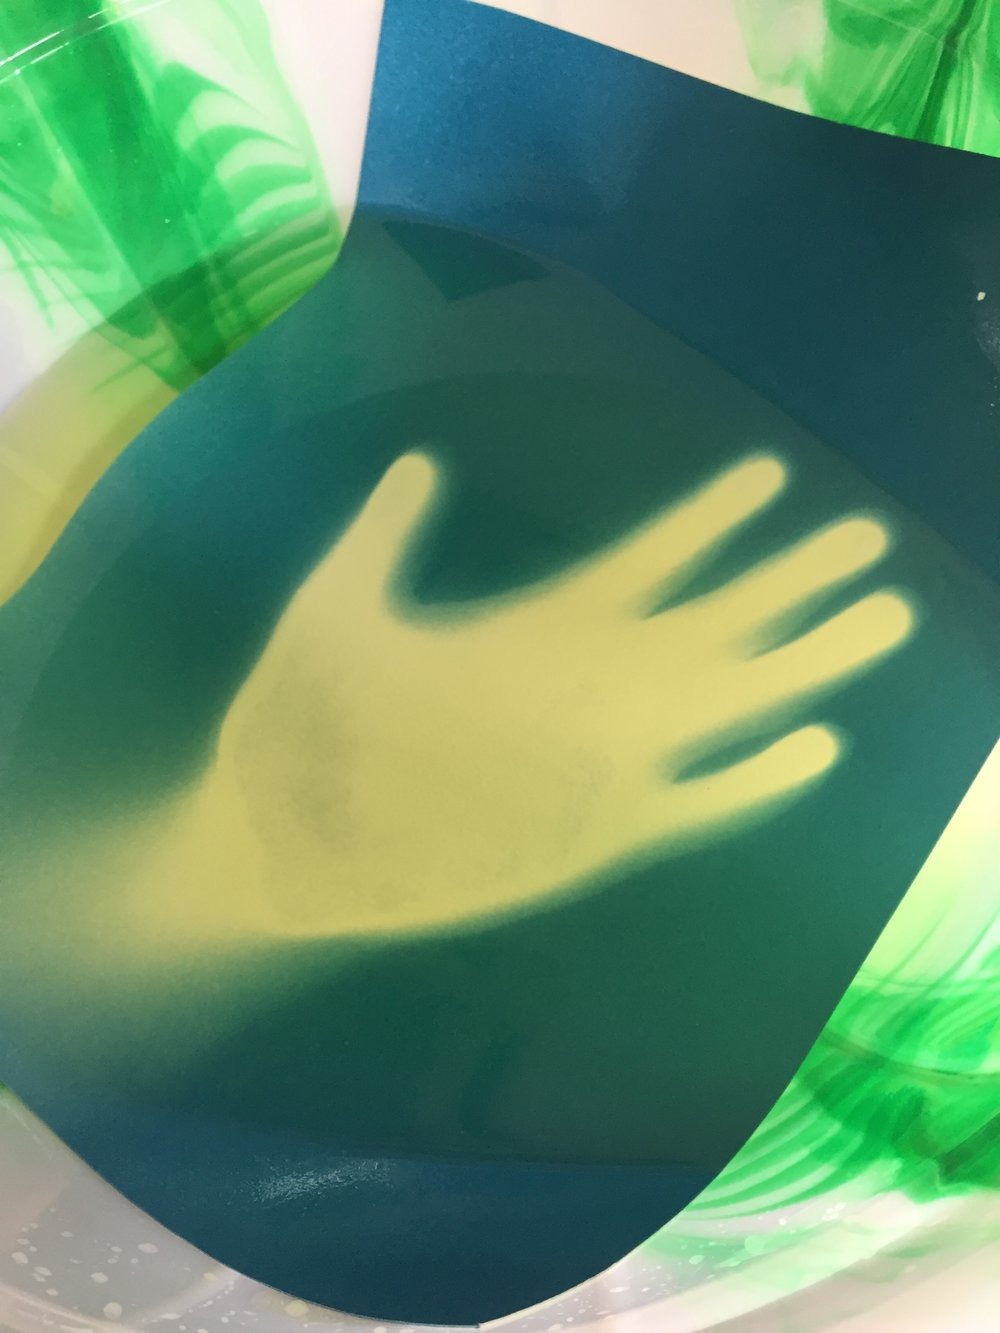 A hand print cyanotype is rinsed in a bowl of water, allowing the image to become fixed and permanent.